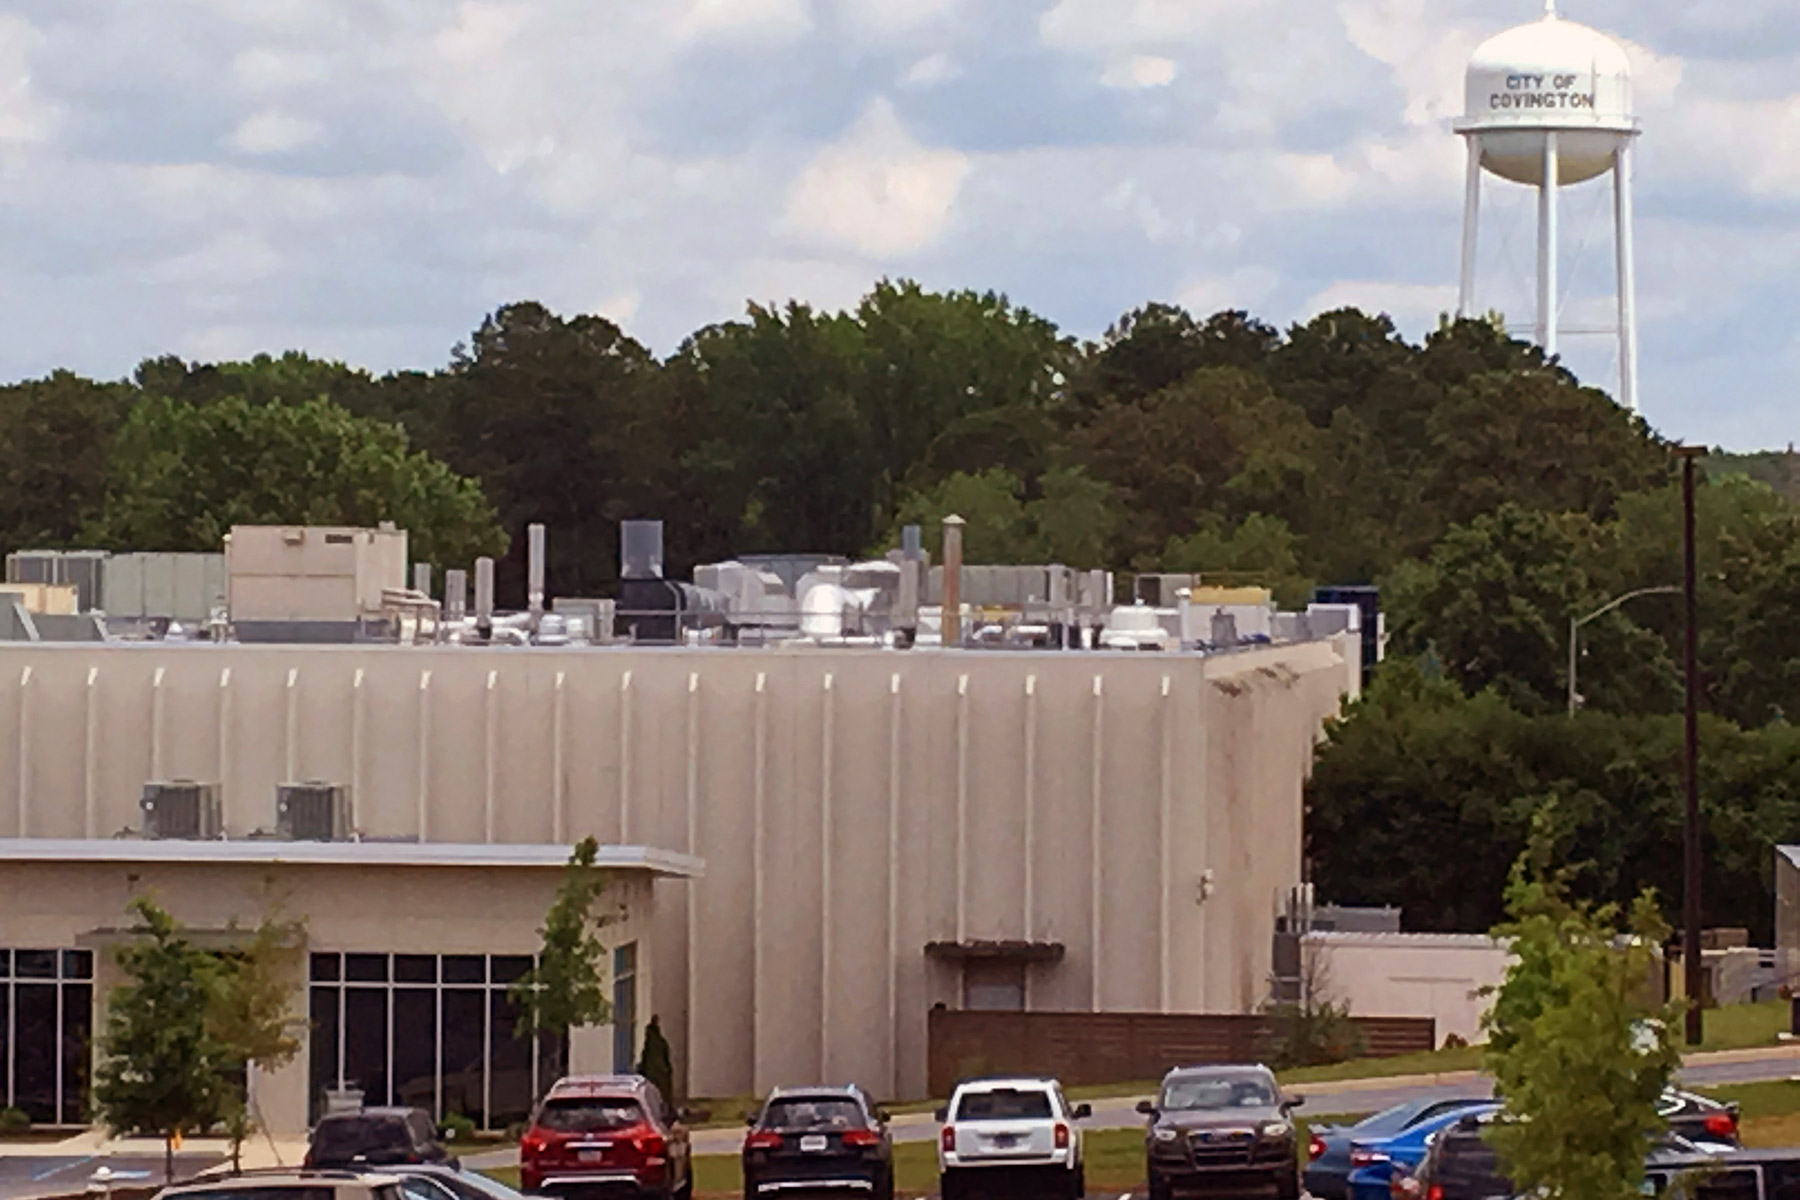 Covington Citizens Urge Testing for Toxic Pollution